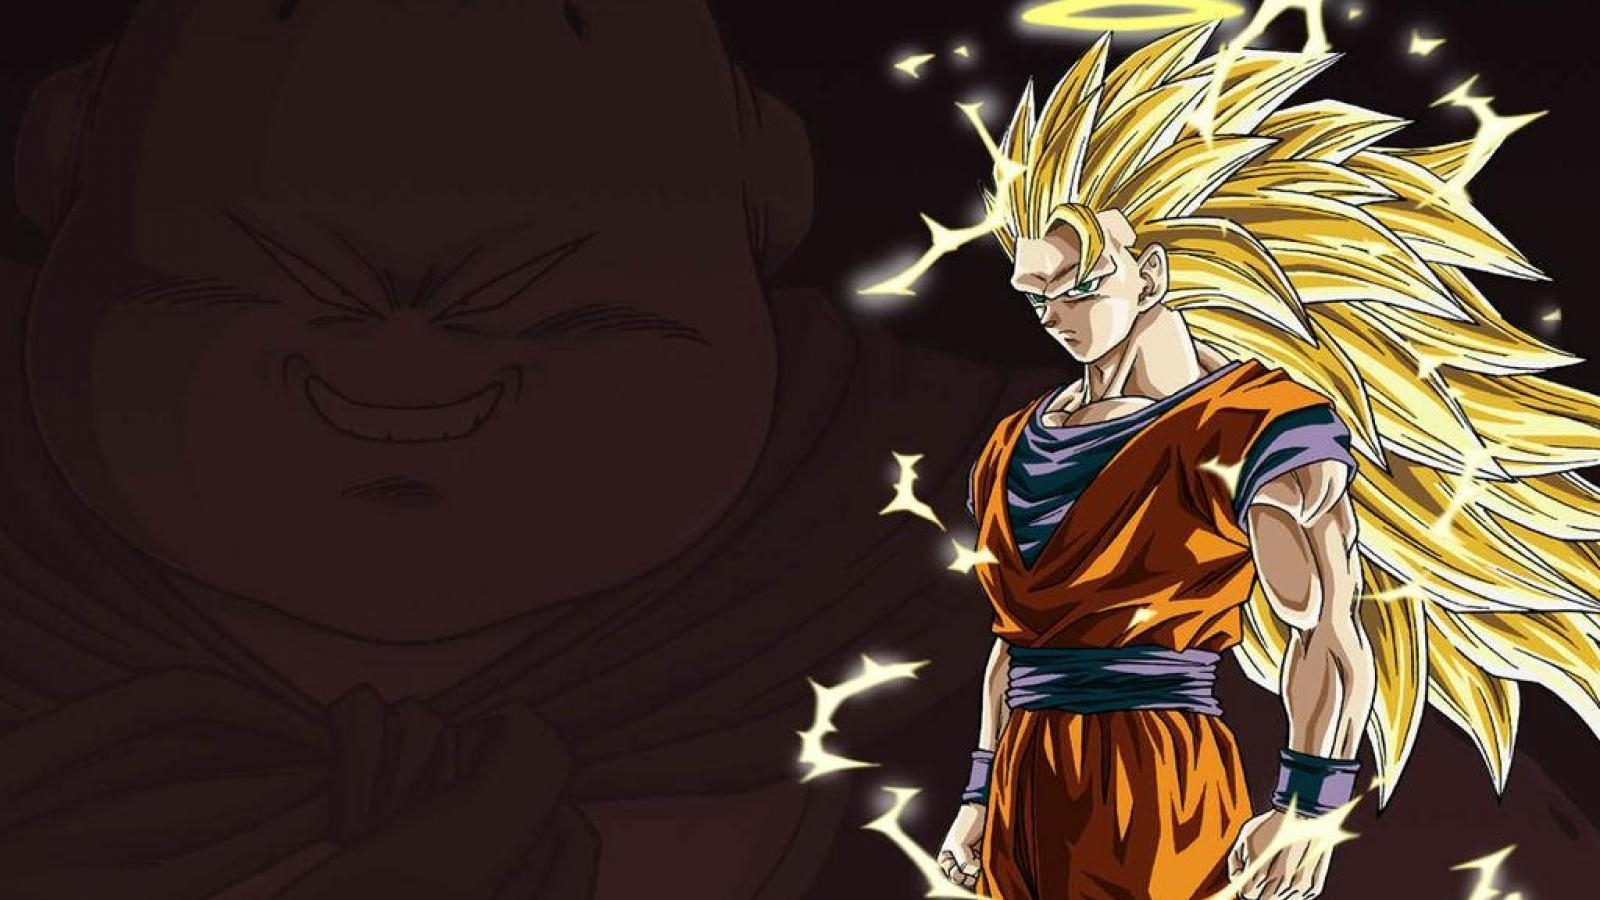 10 Best Super Saiyan 3 Wallpaper FULL HD 1920×1080 For PC Desktop